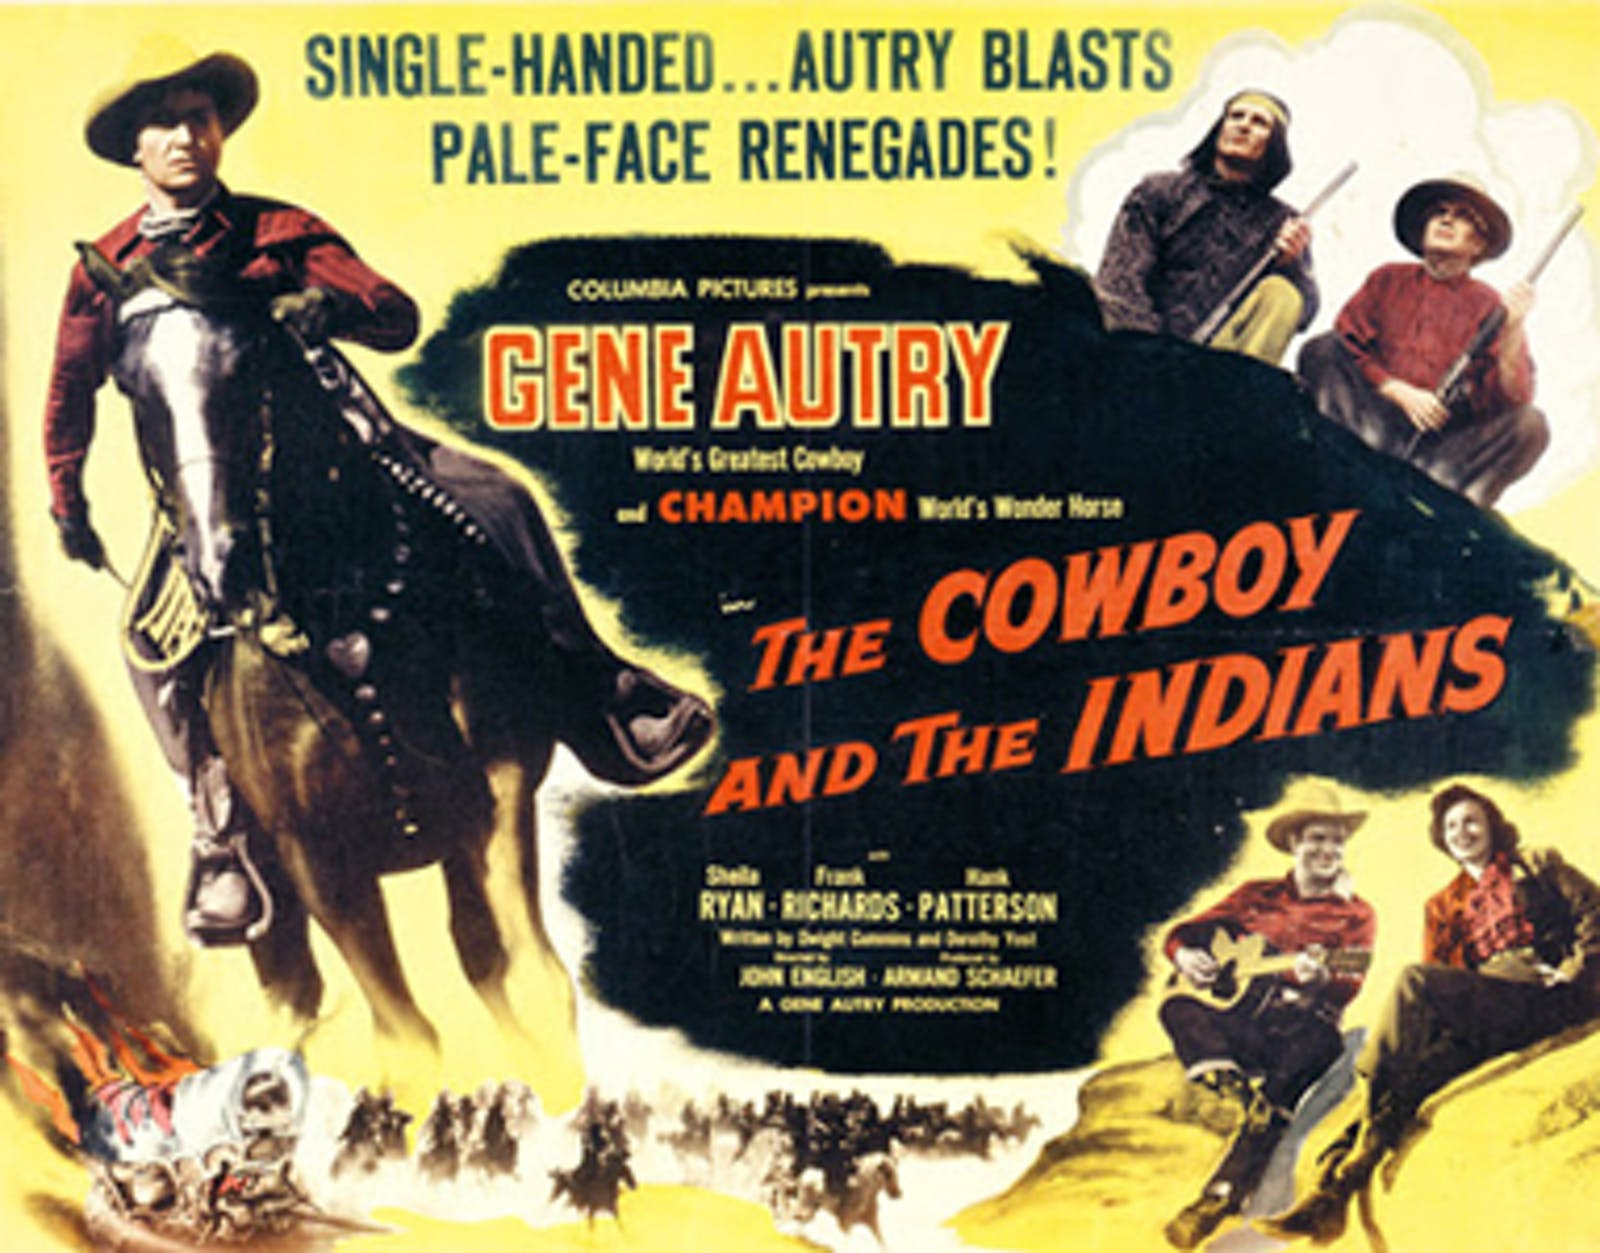 The Cowboy and the Indians lobby card